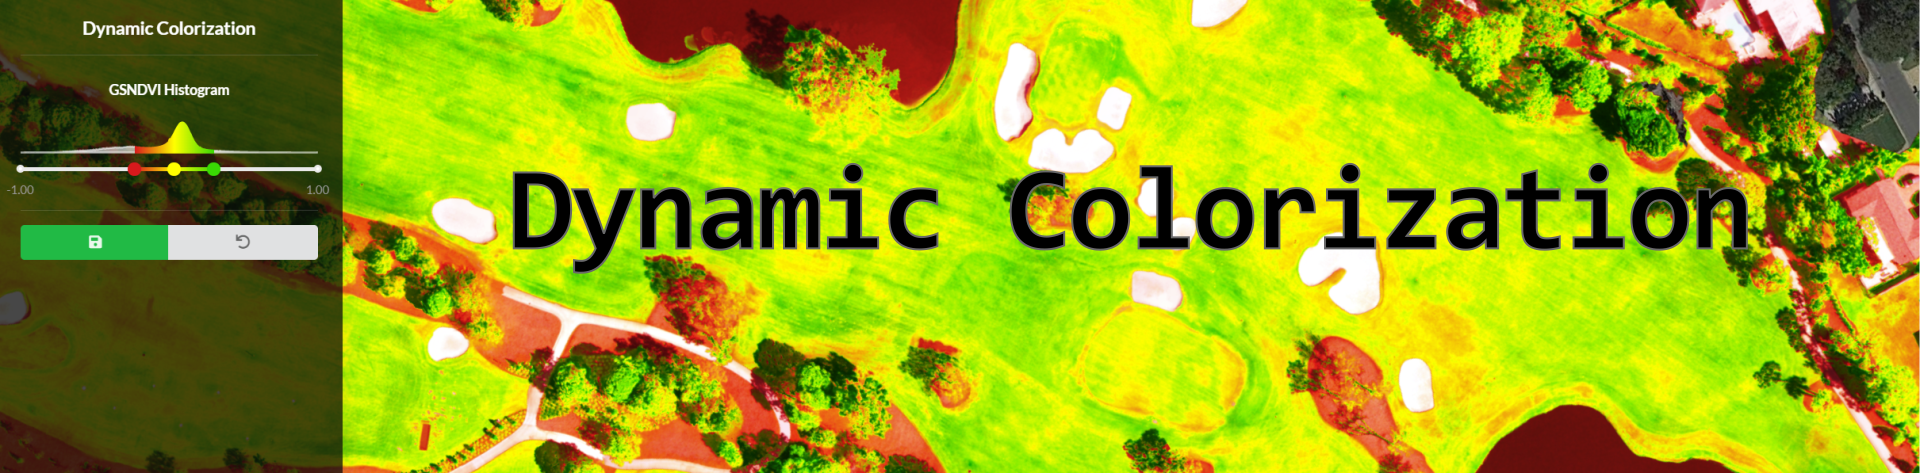 Dynamic Colorization: A Deeper Look into What it Means